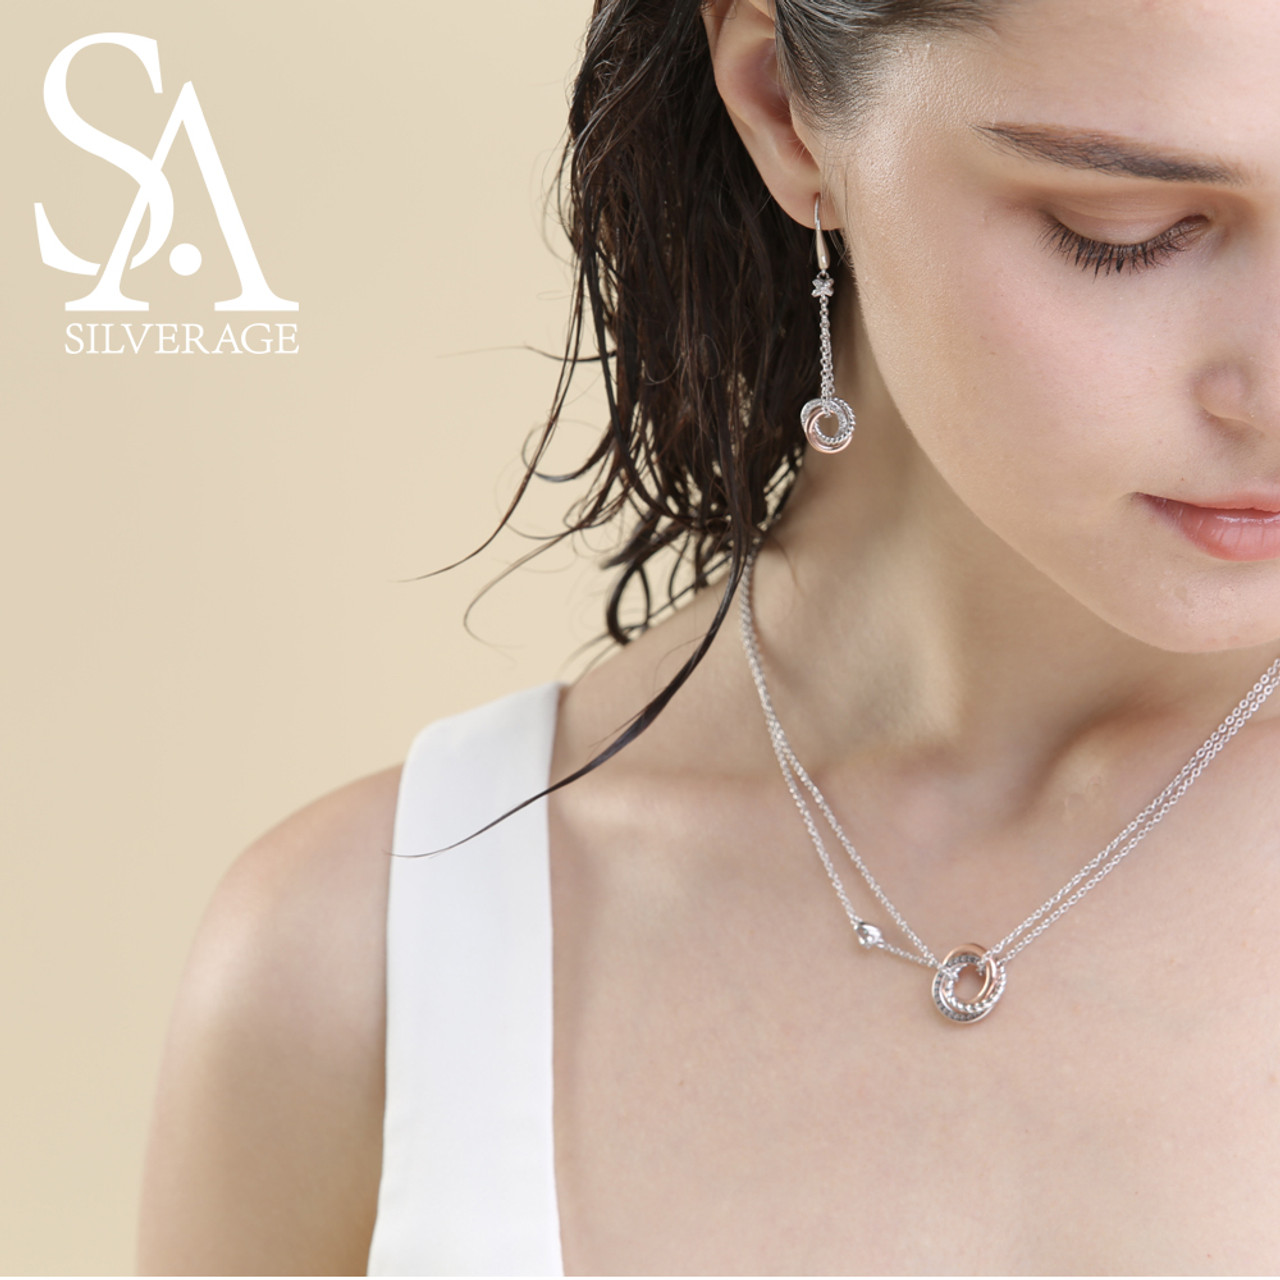 Sa silverage 925 sterling silver long necklaces pendants rose gold sa silverage 925 sterling silver long necklaces pendants rose gold color fine jewelry love 925 silver aloadofball Choice Image